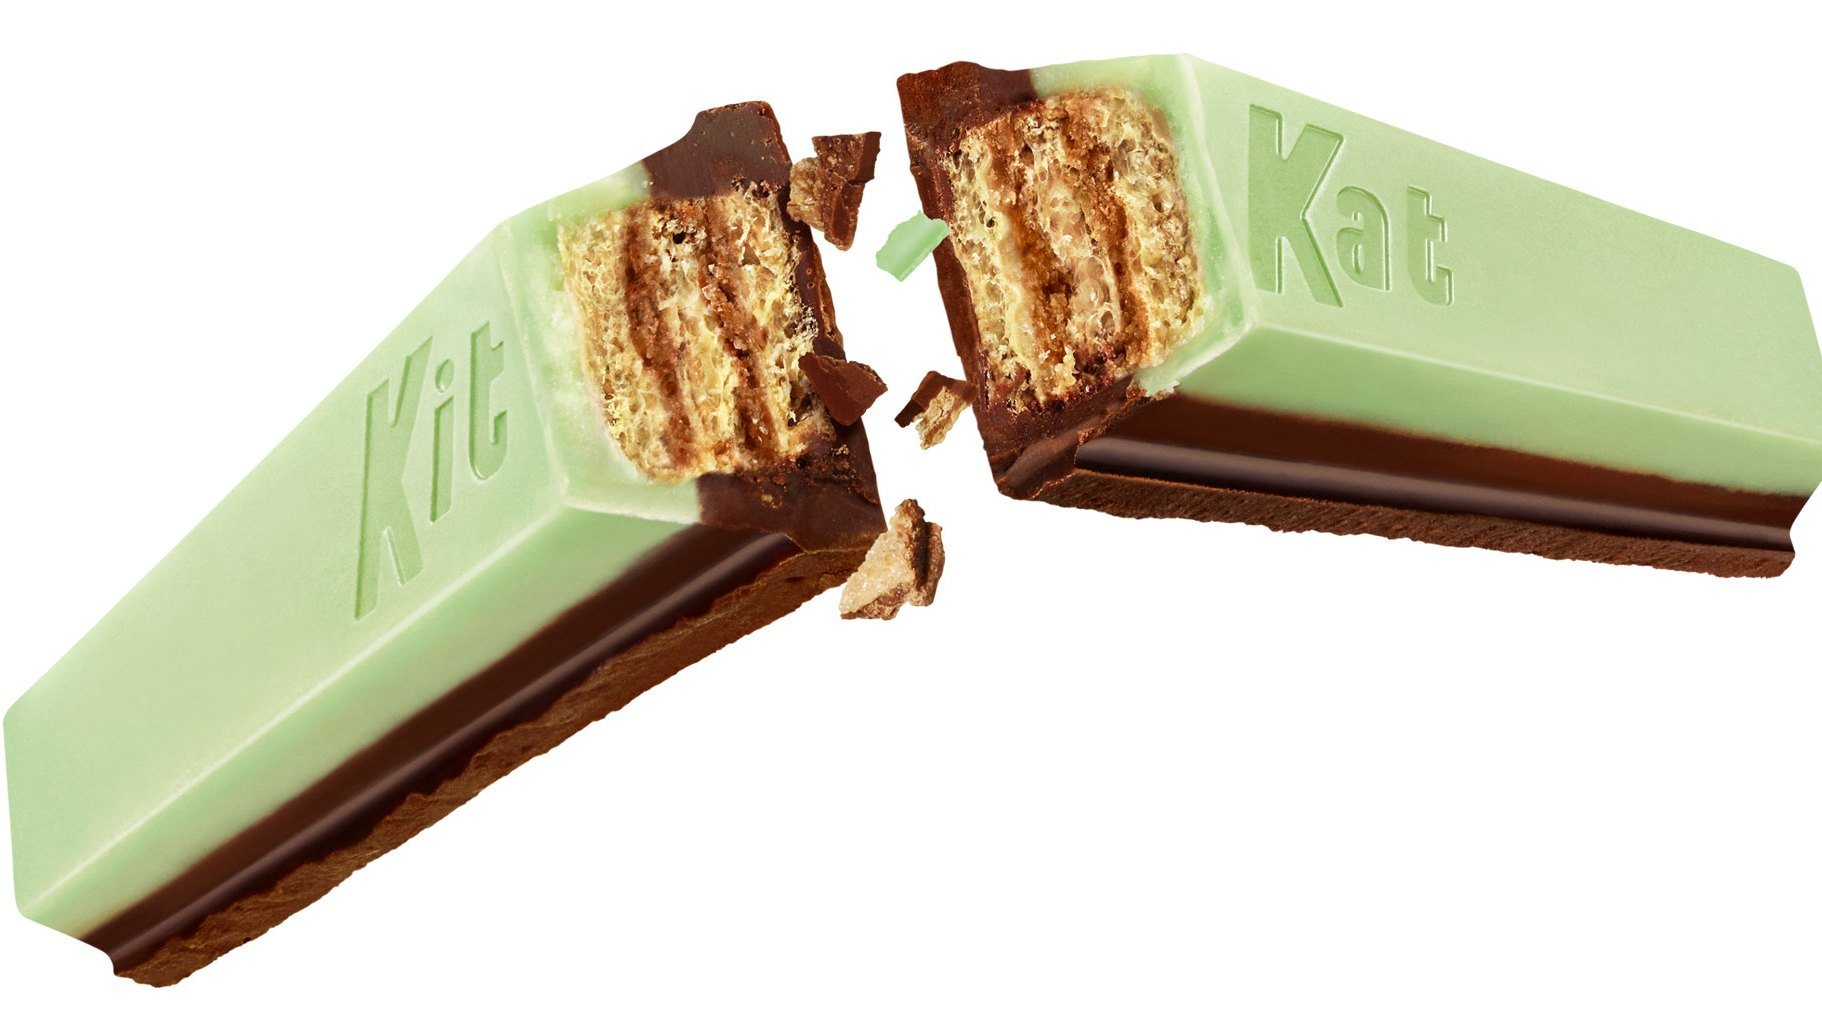 Kit Kat Duos Will Hit Shelves Later This Year